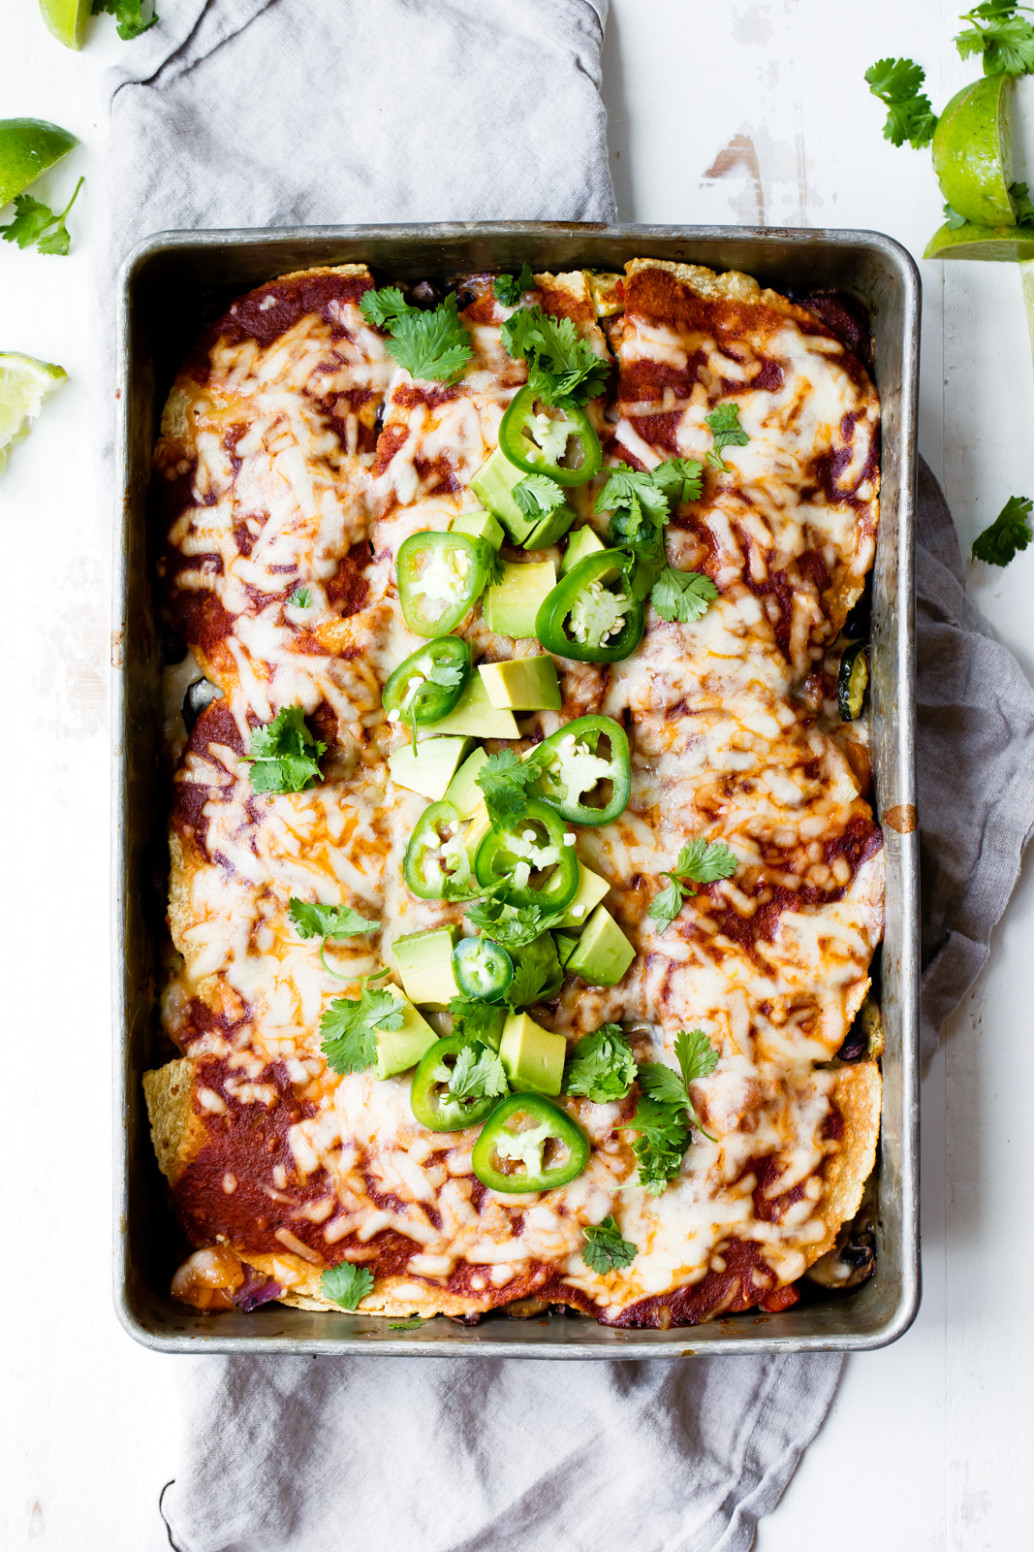 Chipotle Black Bean Roasted Veggie Enchilada Casserole ..